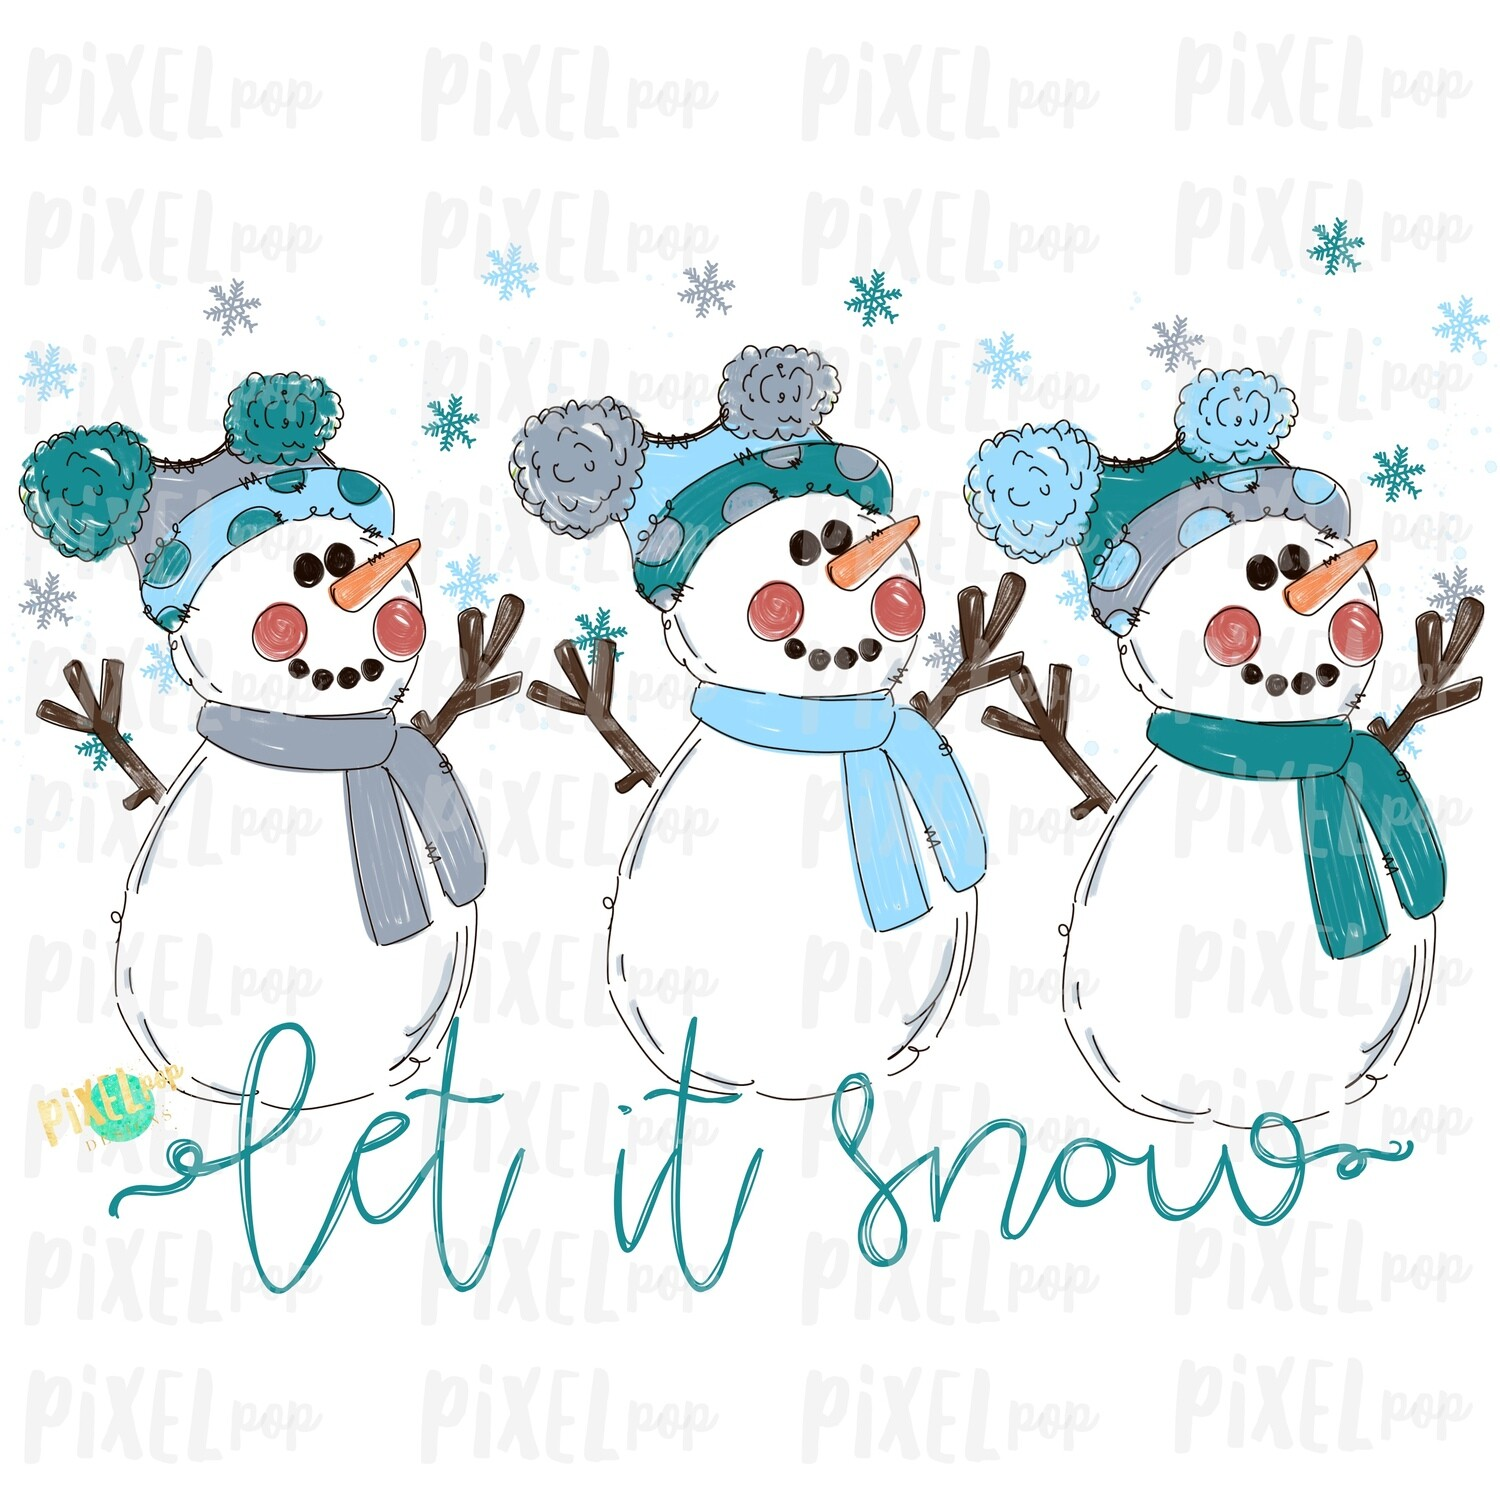 Let it Snow Snowman Trio Blues & Grey Watercolor Sublimation PNG | Hand Drawn Design | Sublimation PNG | Digital Download | Printable Art